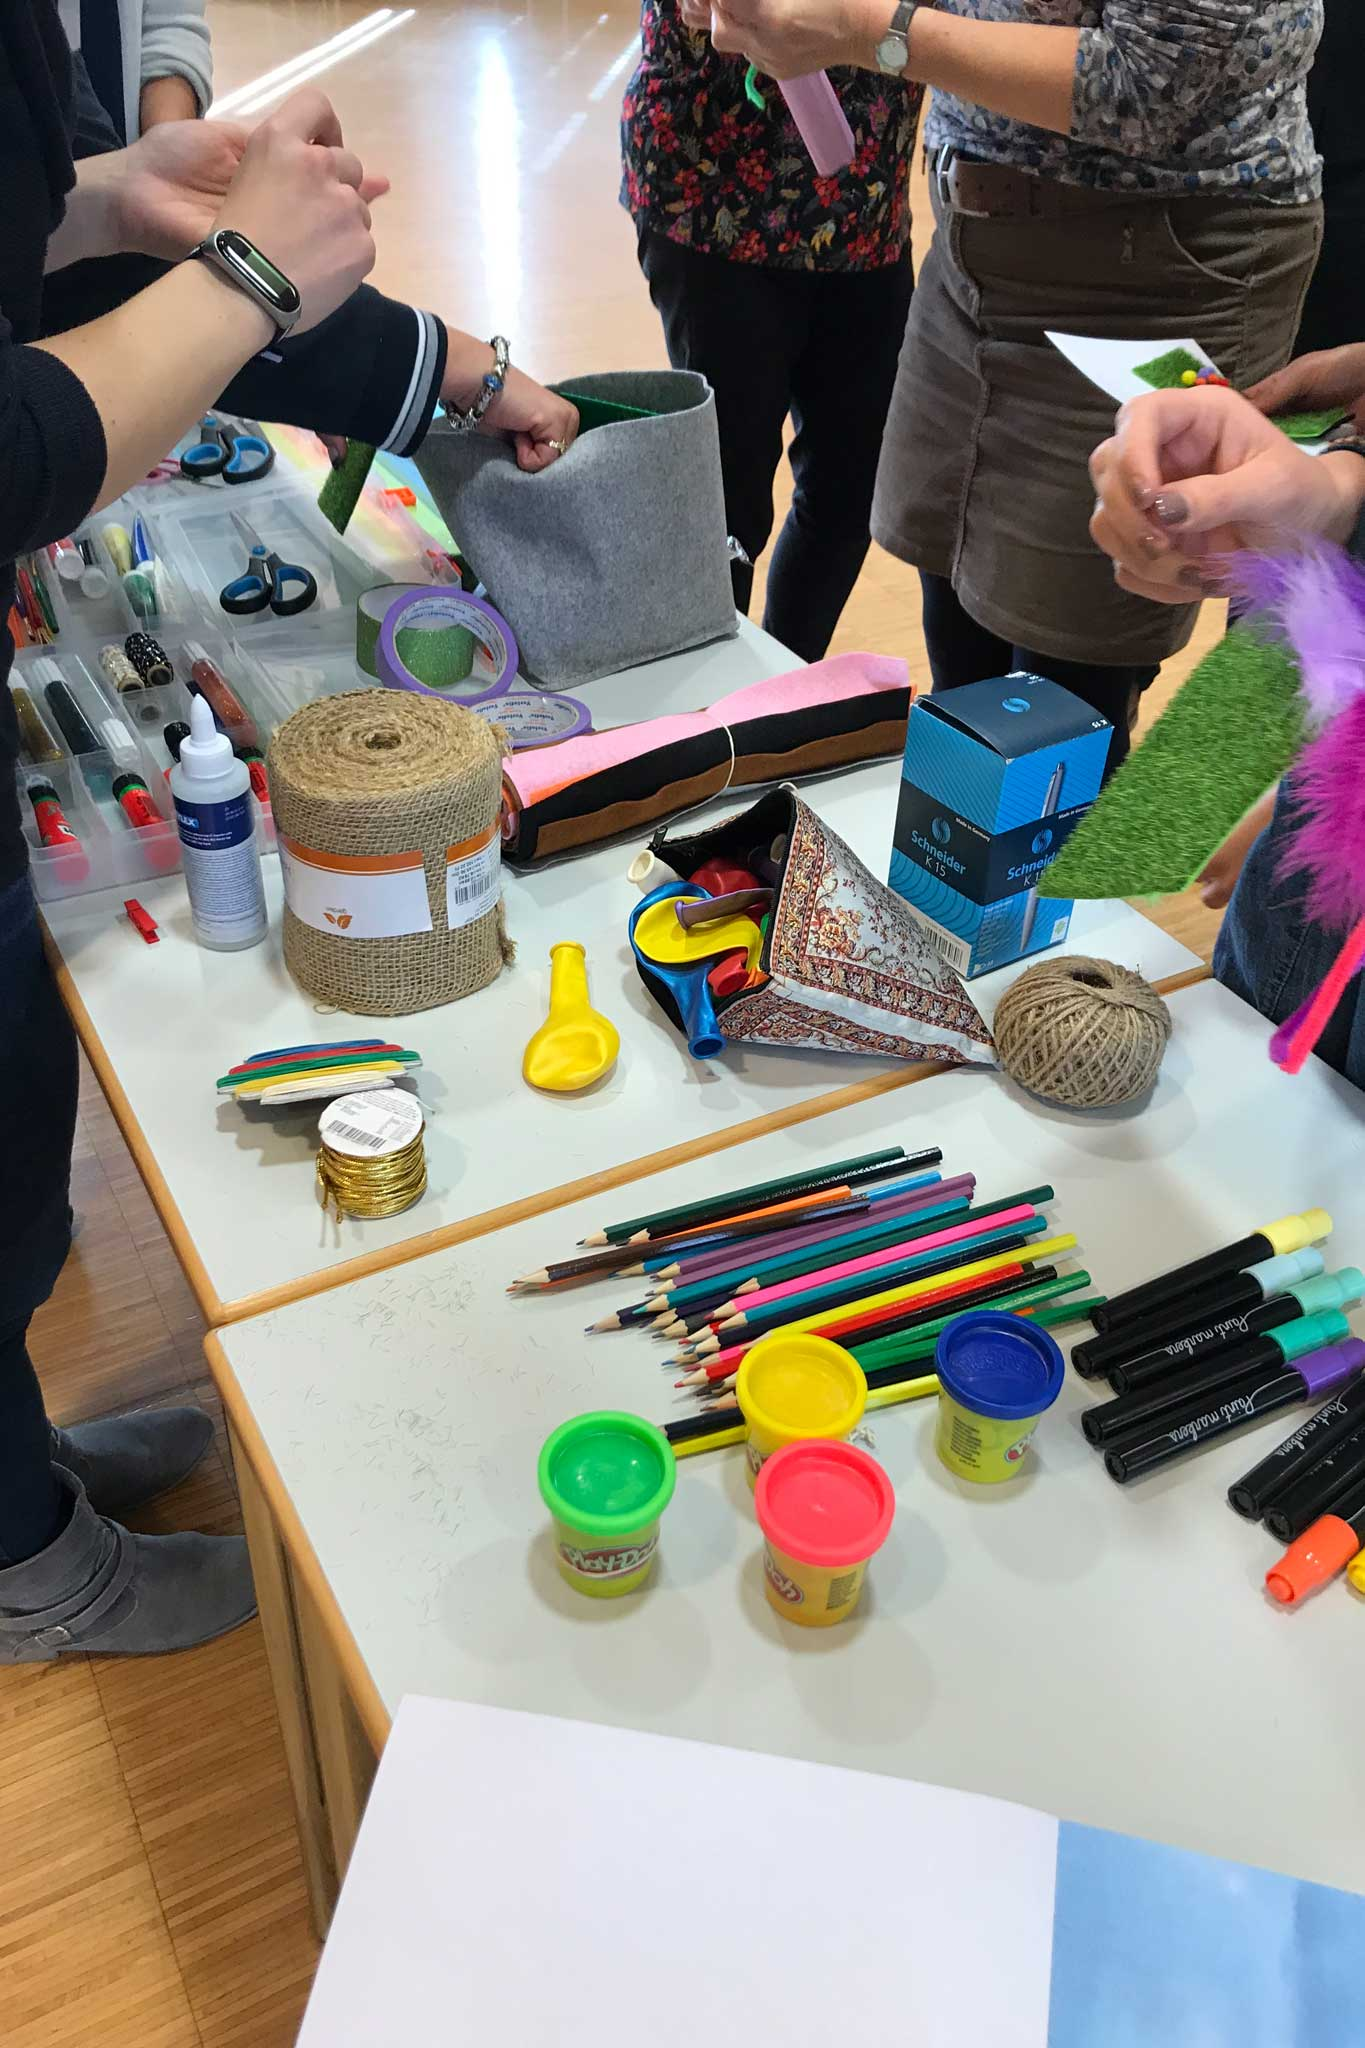 Prototypenbau beim Design Thinking Workshop.